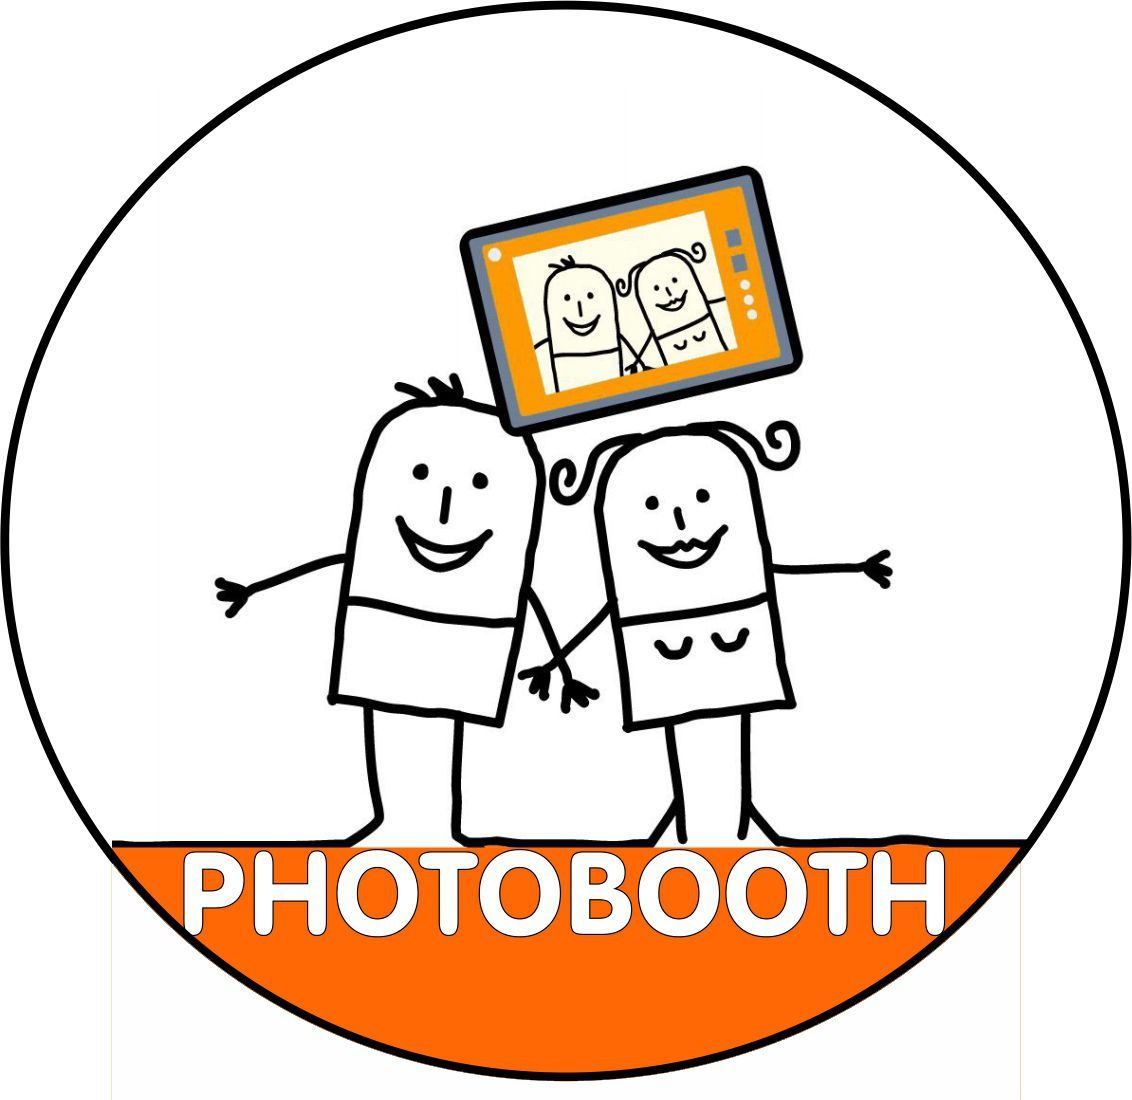 LOGO_SERIE_PHOTOBOOTH_MBS